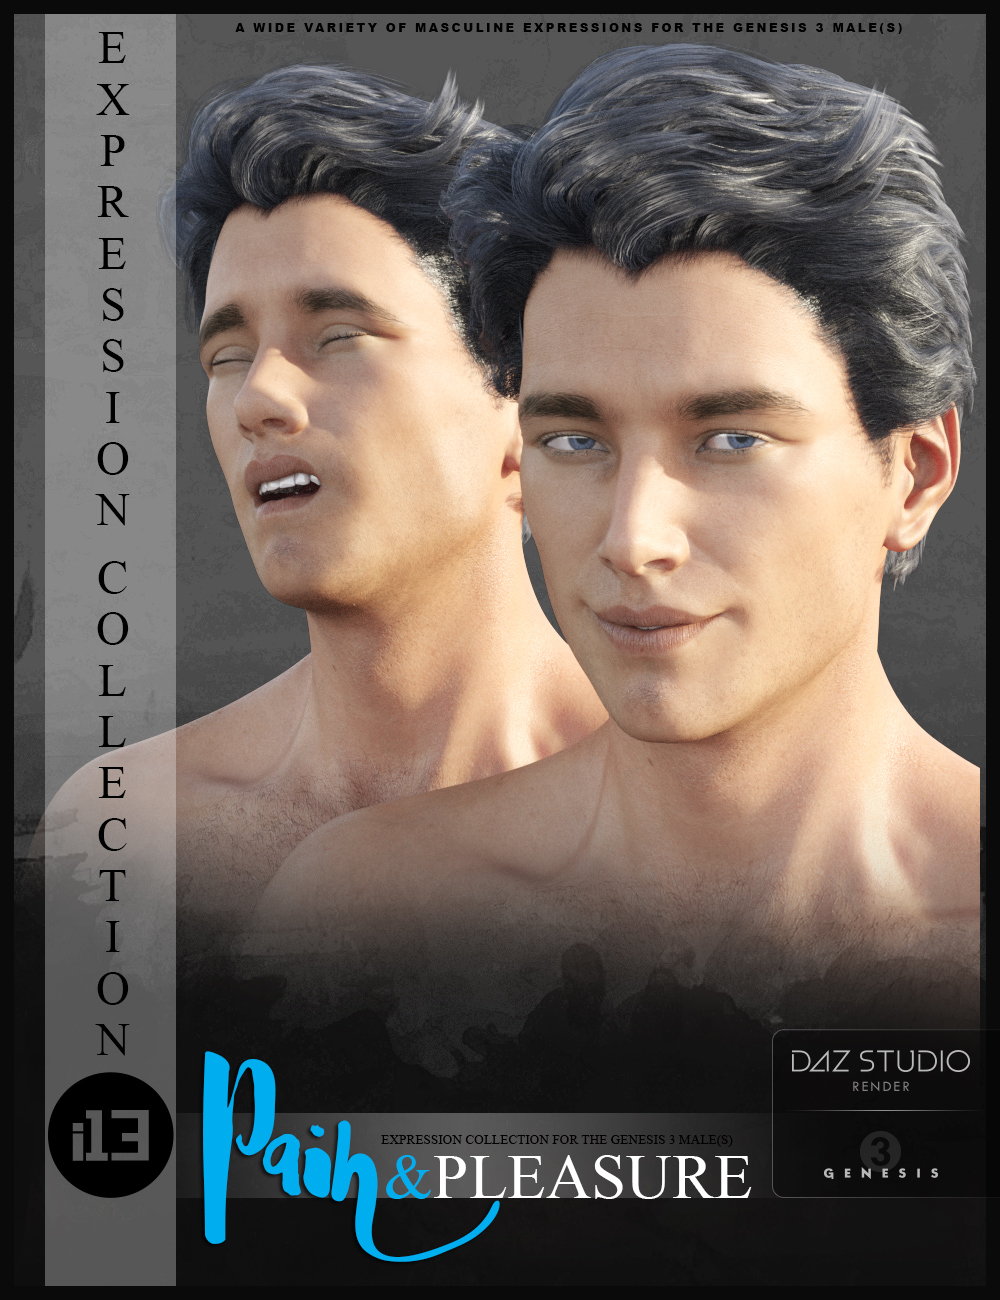 i13 Pain and Pleasure Expressions for the Genesis 3 Male(s) by: ironman13, 3D Models by Daz 3D